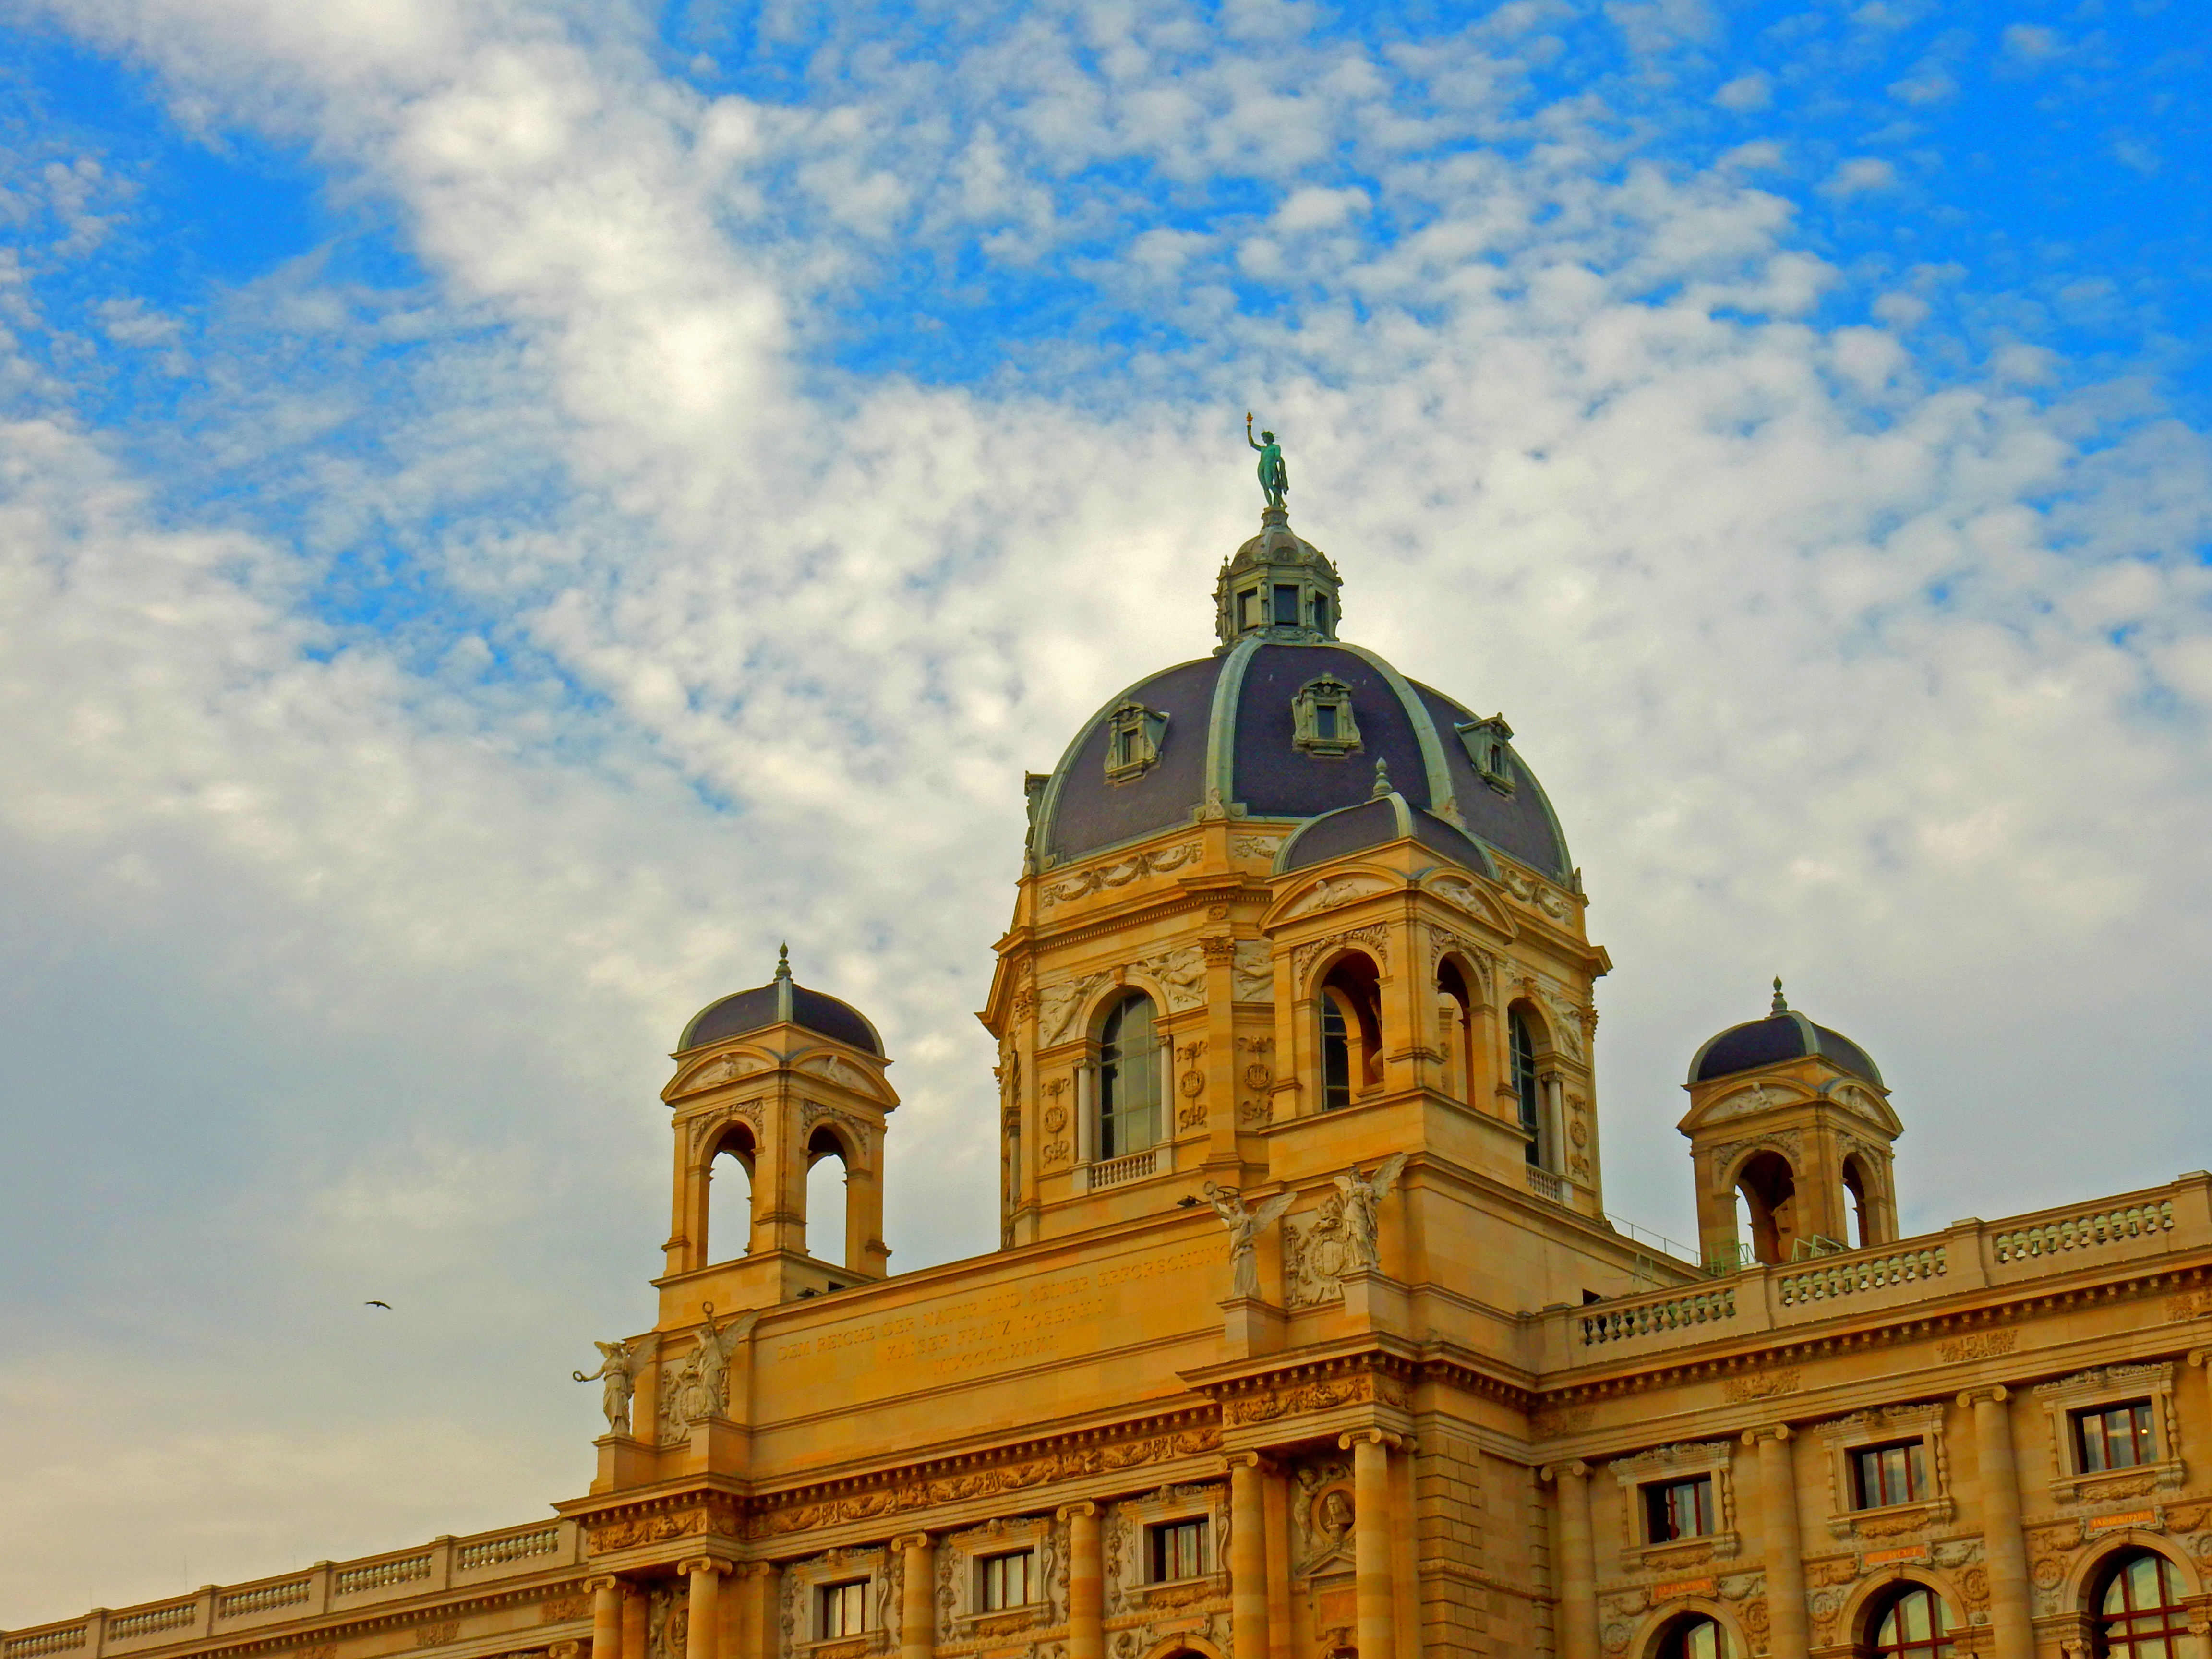 Top Things To Do In Vienna - Vistit A Museum Or Two - Exterior of the Museum of Fine Art and Natural History Museum Vienna Austria